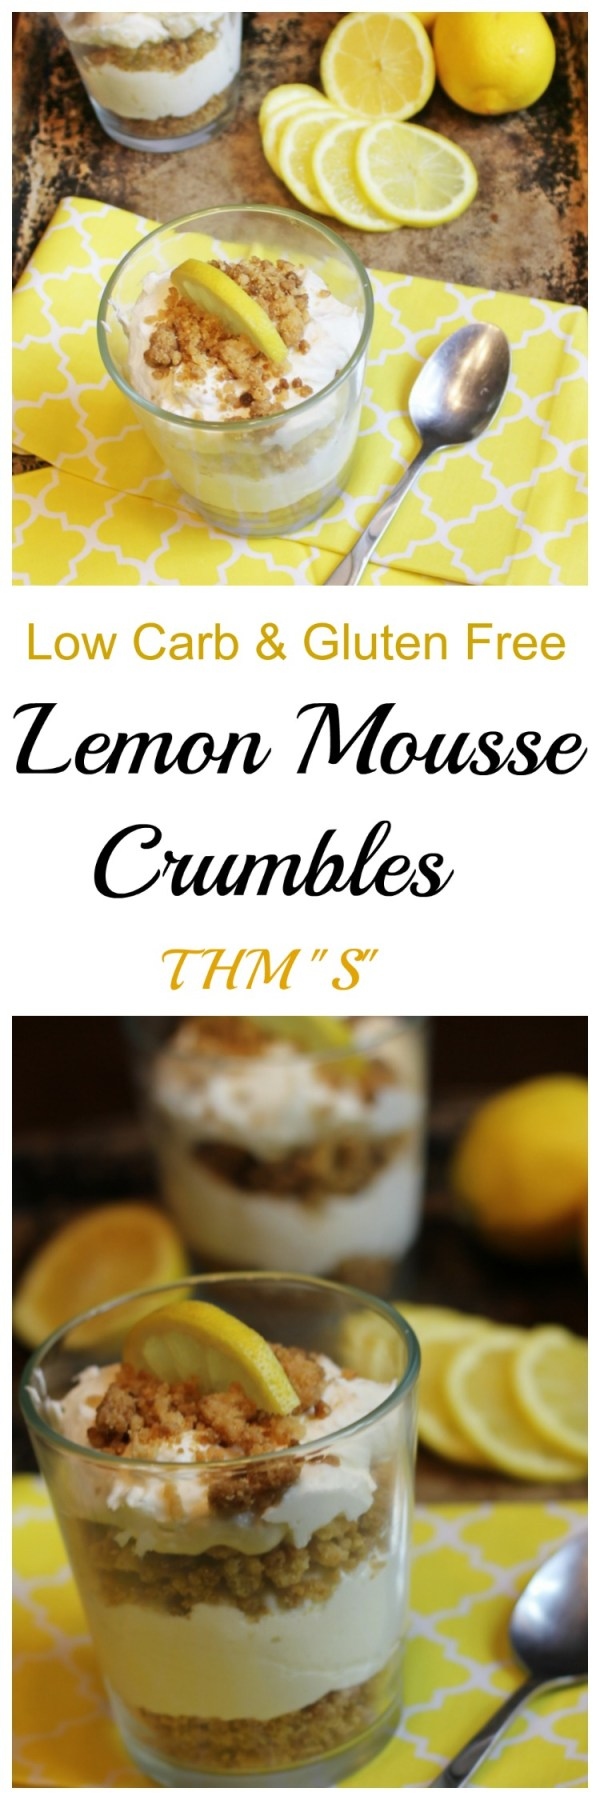 "Low Carb Lemon Mousse Crumbles are tart and rich with a delicious crunch. Gluten Free and THM ""S""."